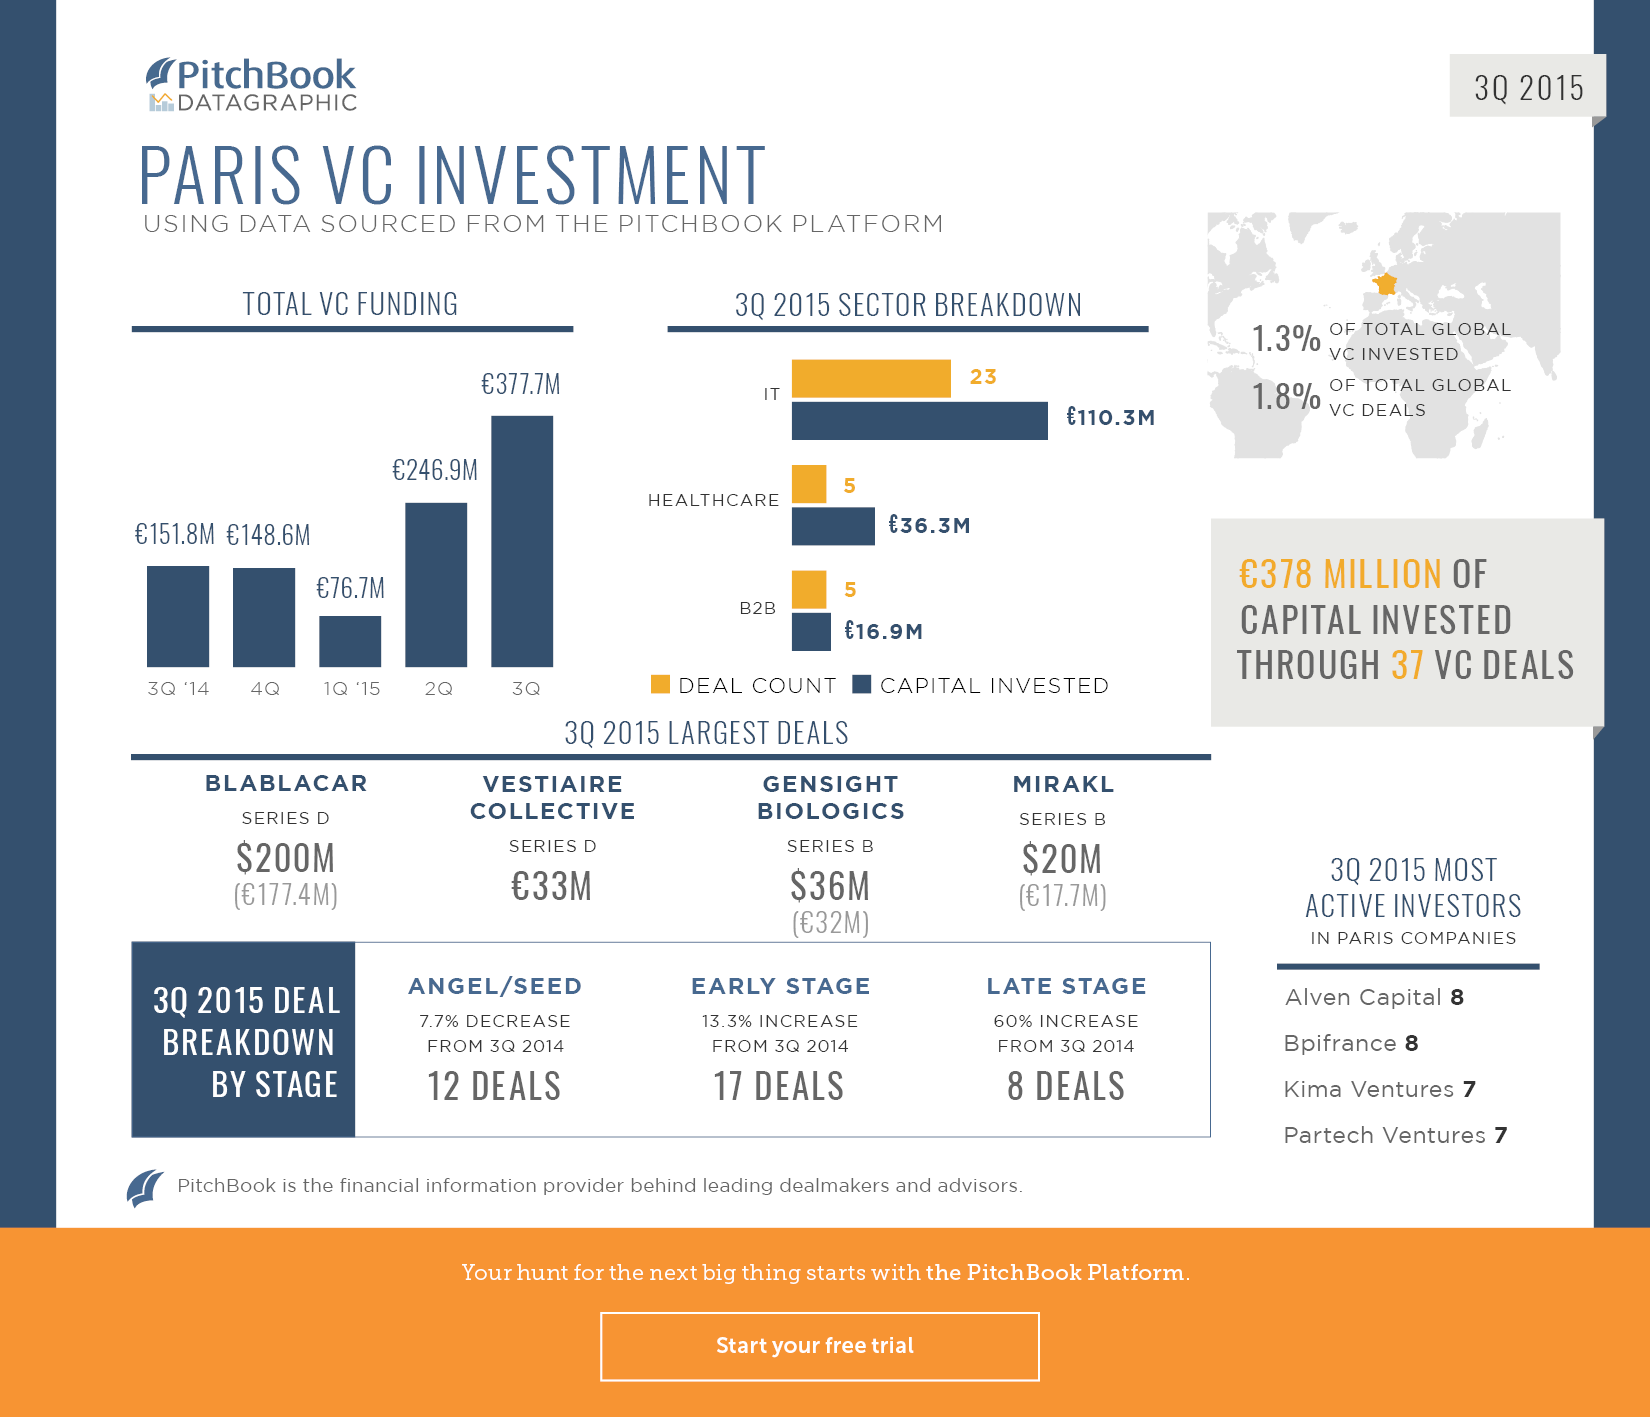 3Q 2015 Paris Datagraphic